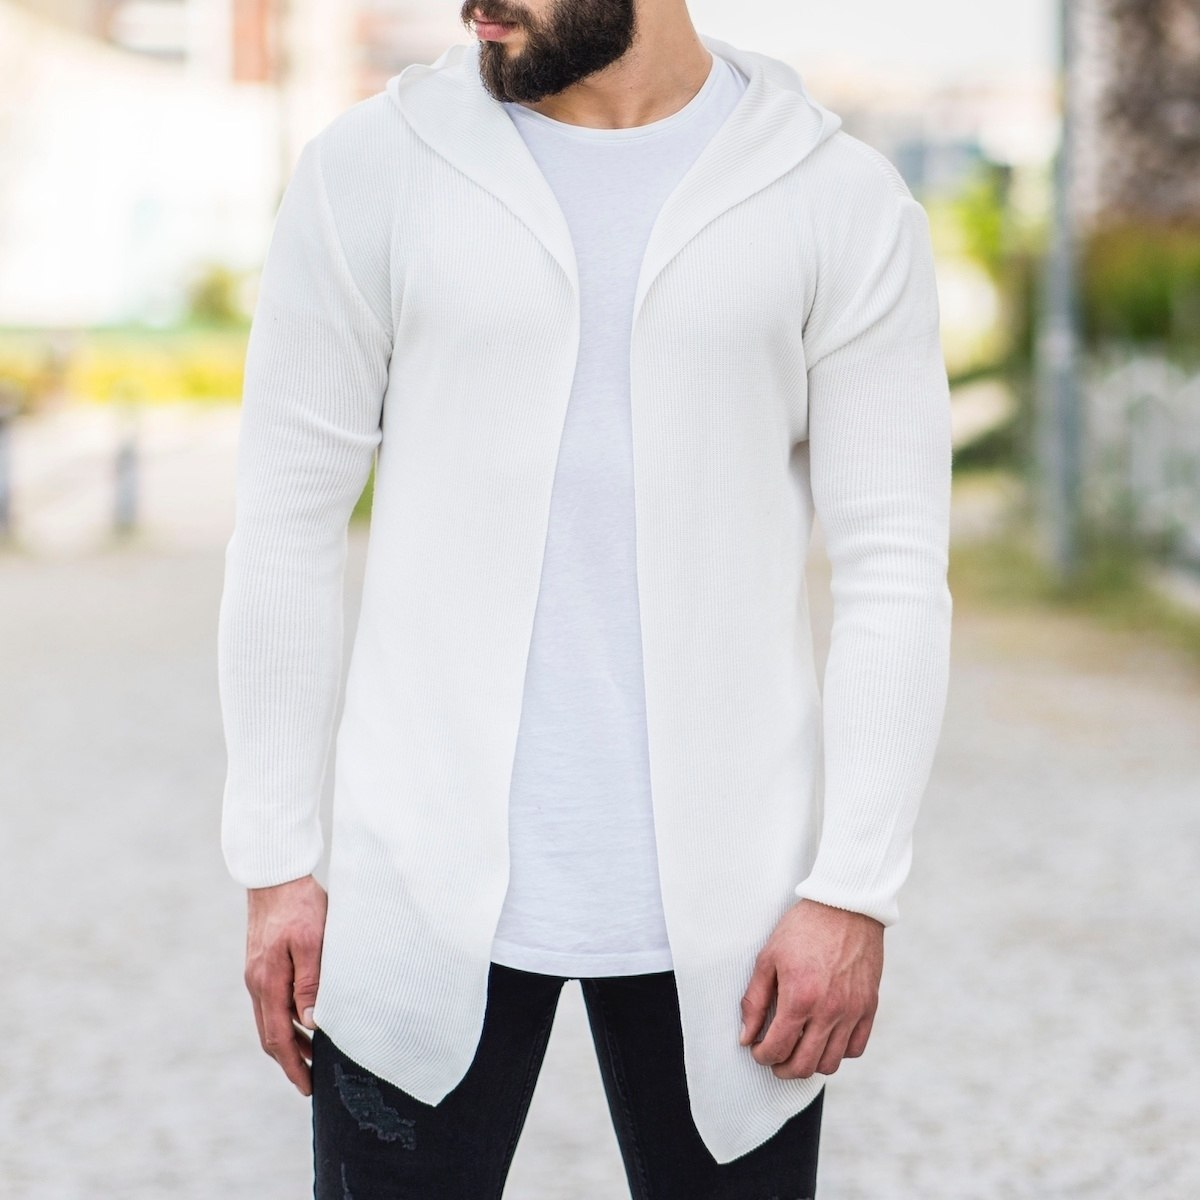 Hooded Style White Cardigan